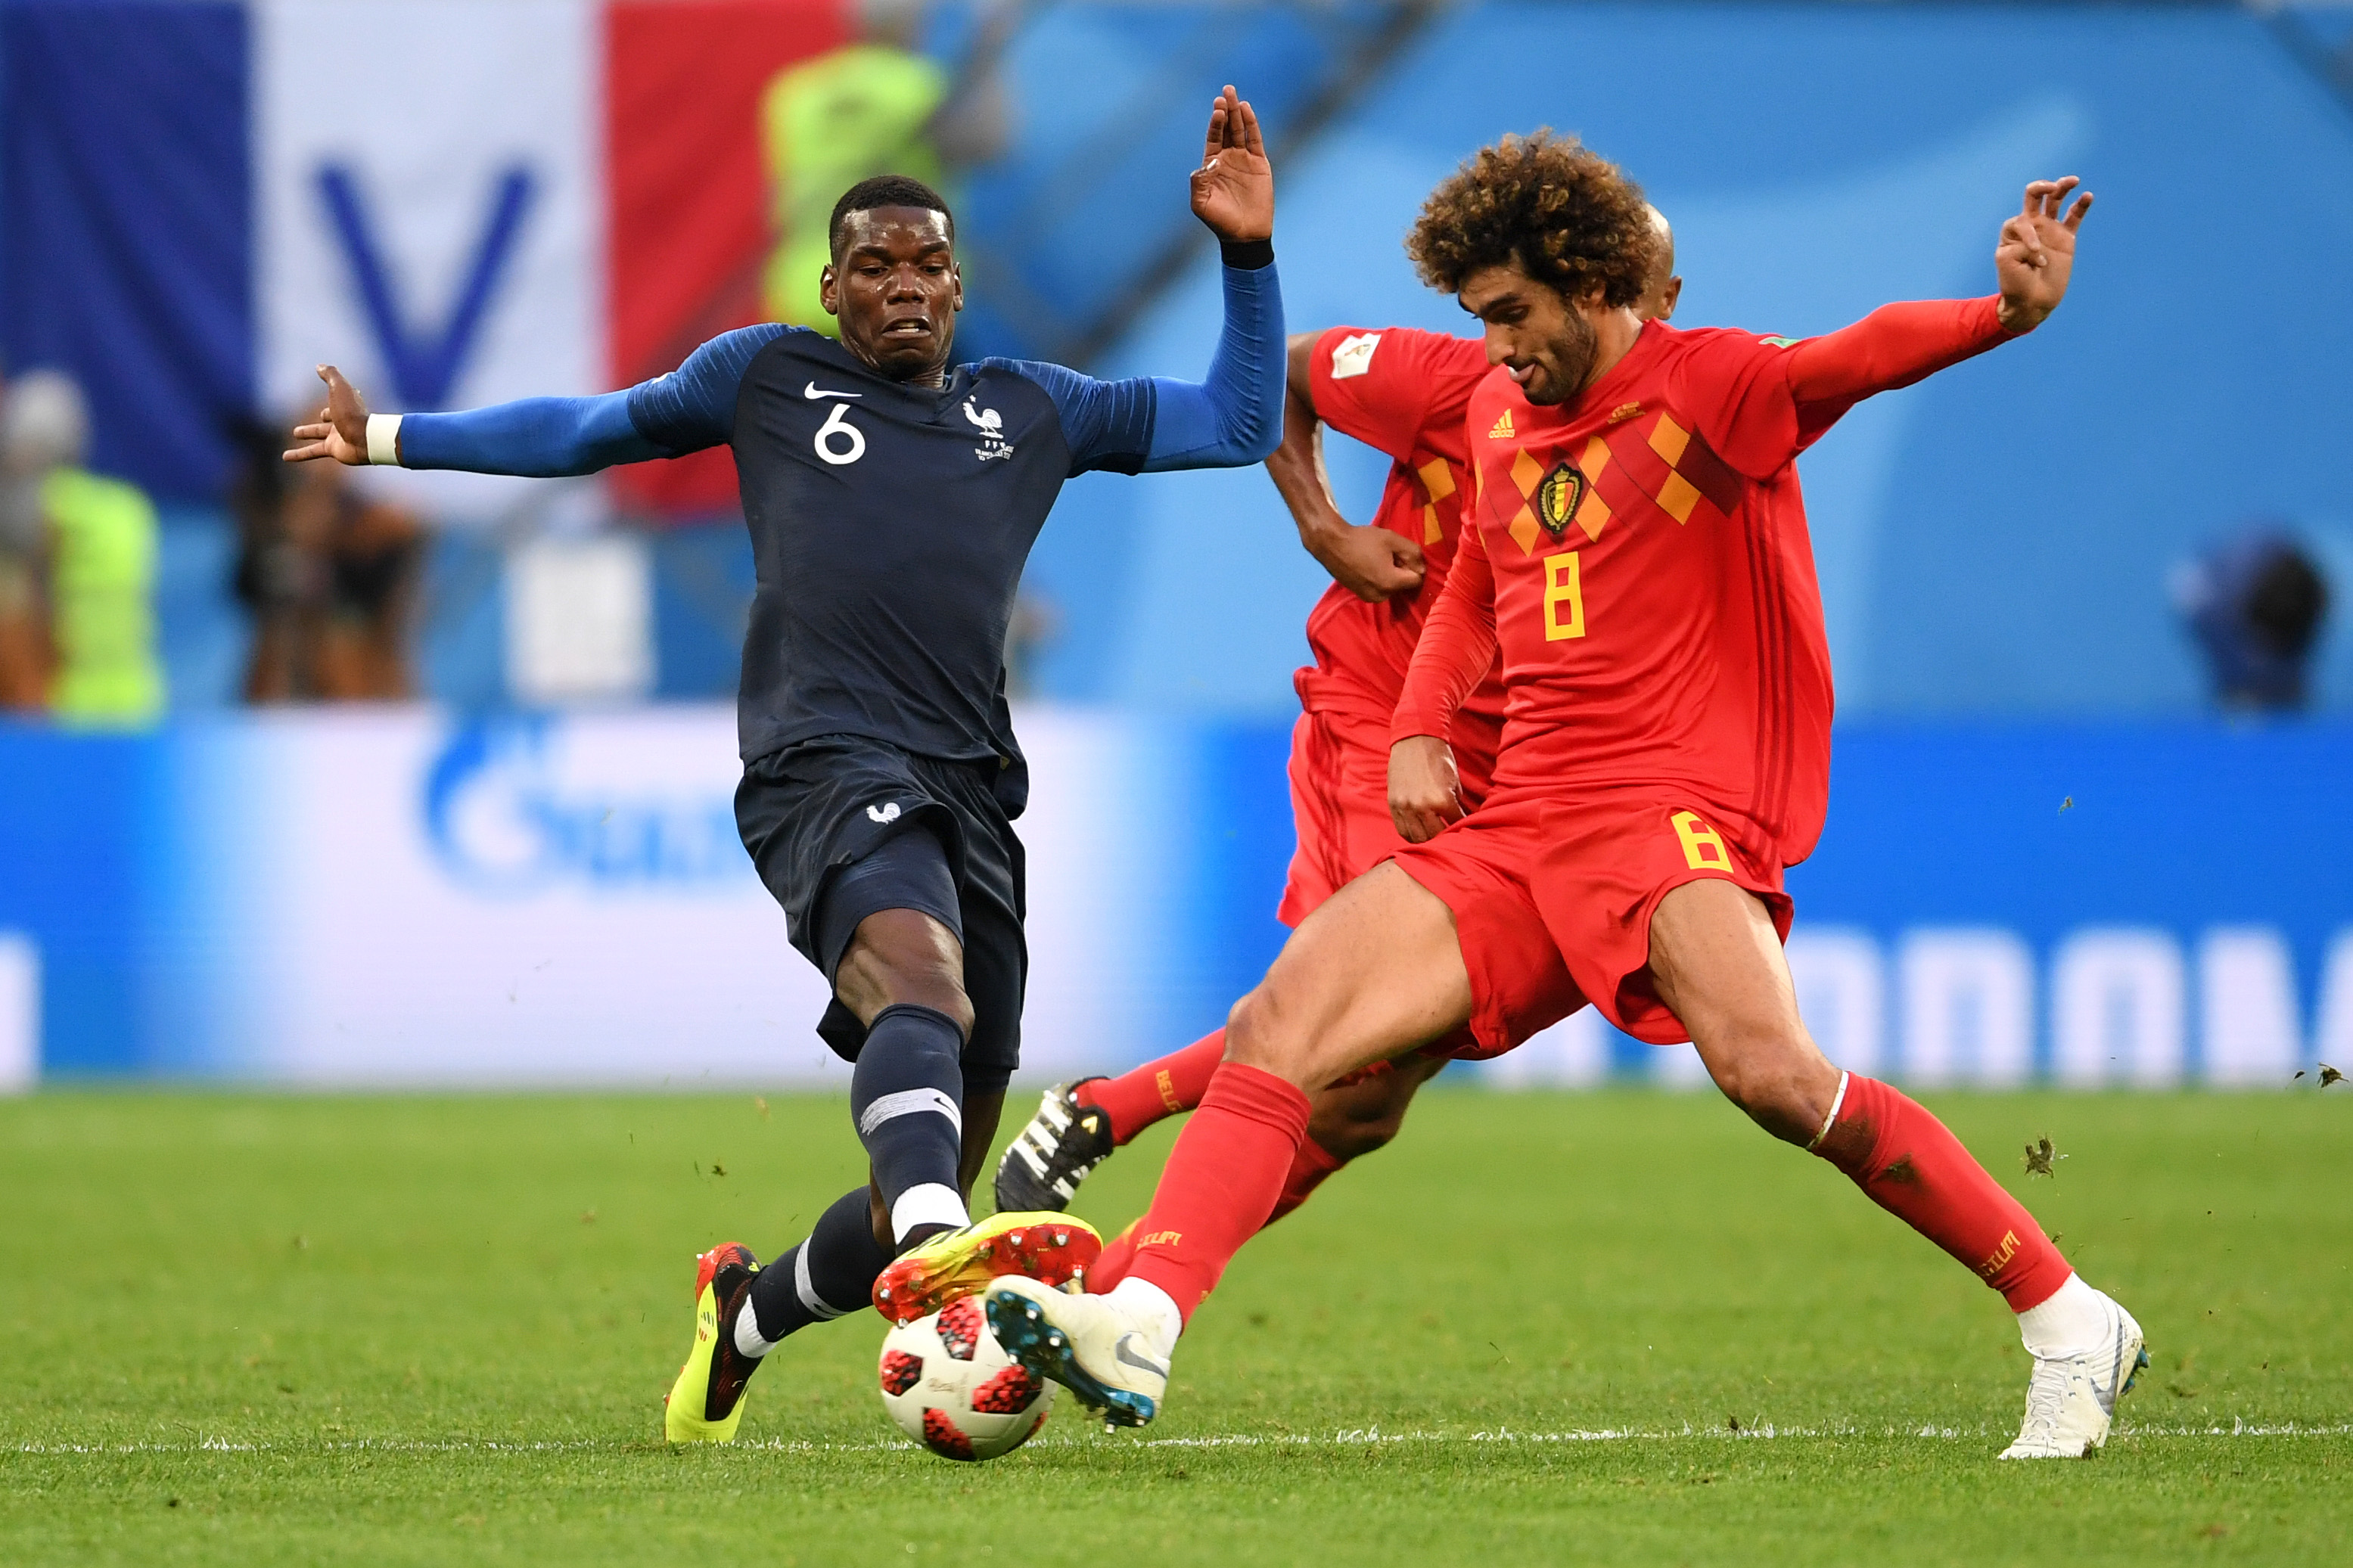 Pogba has to show us World Cup-winning form, urges Mourinho